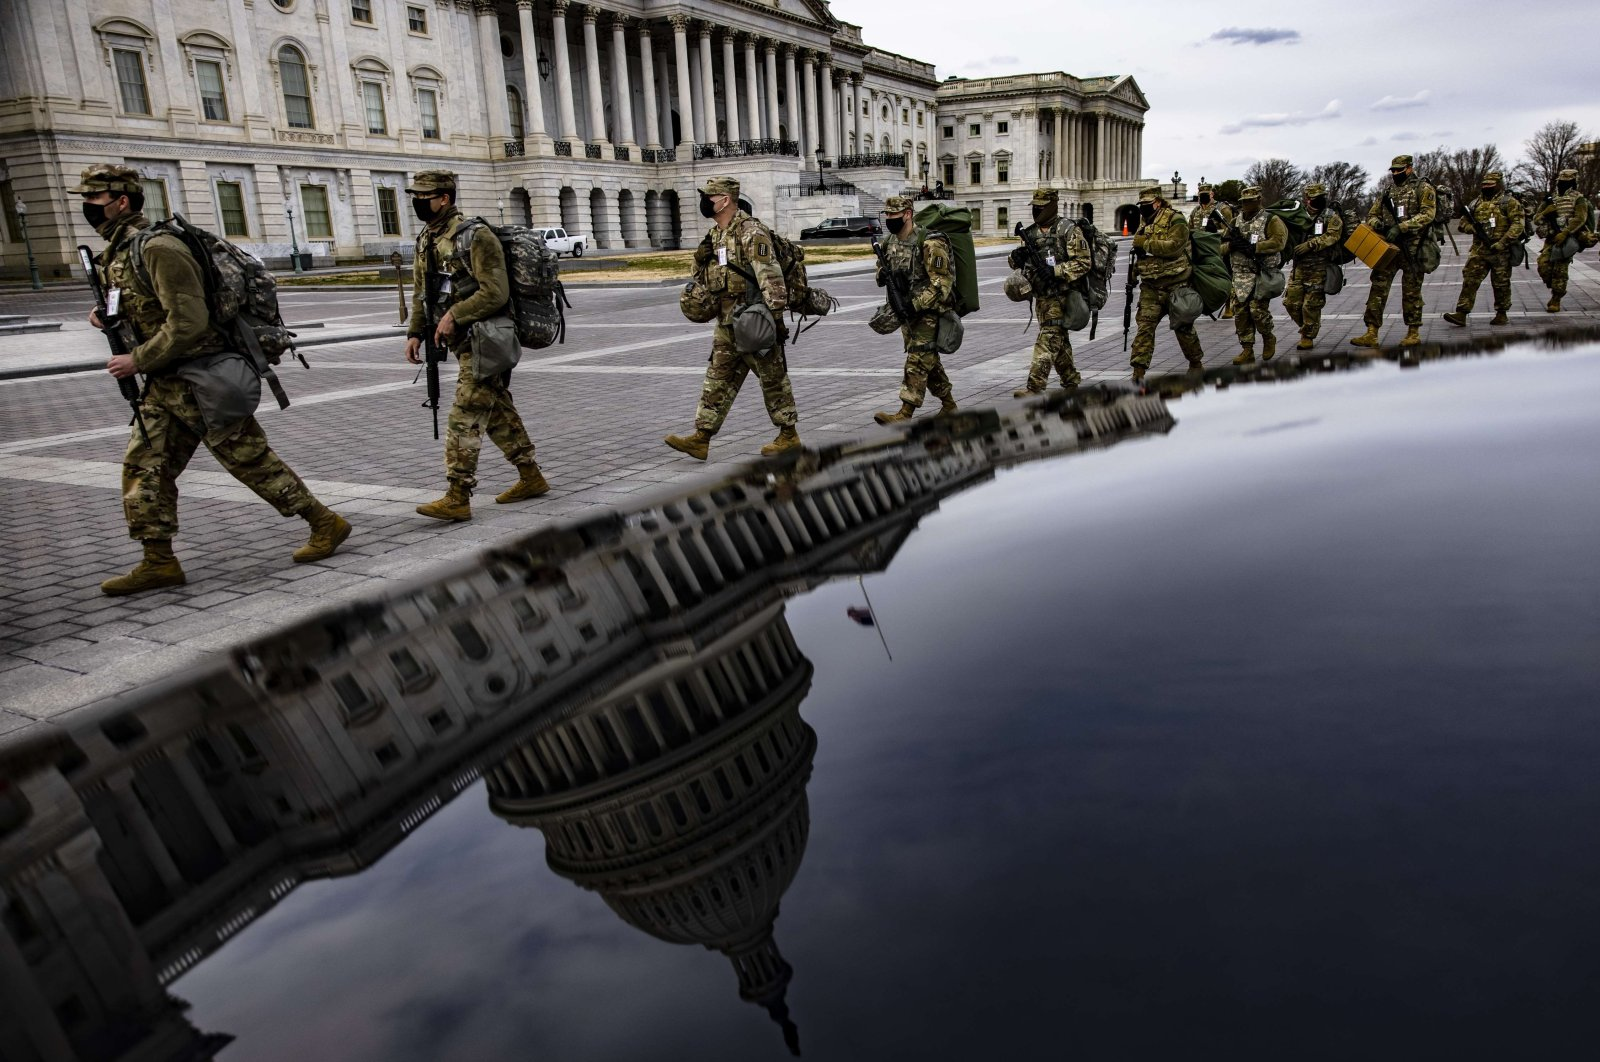 Virginia National Guard soldiers march east of the U.S. Capitol, Washington, D.C., U.S., Jan. 16, 2021. (AFP Photo)